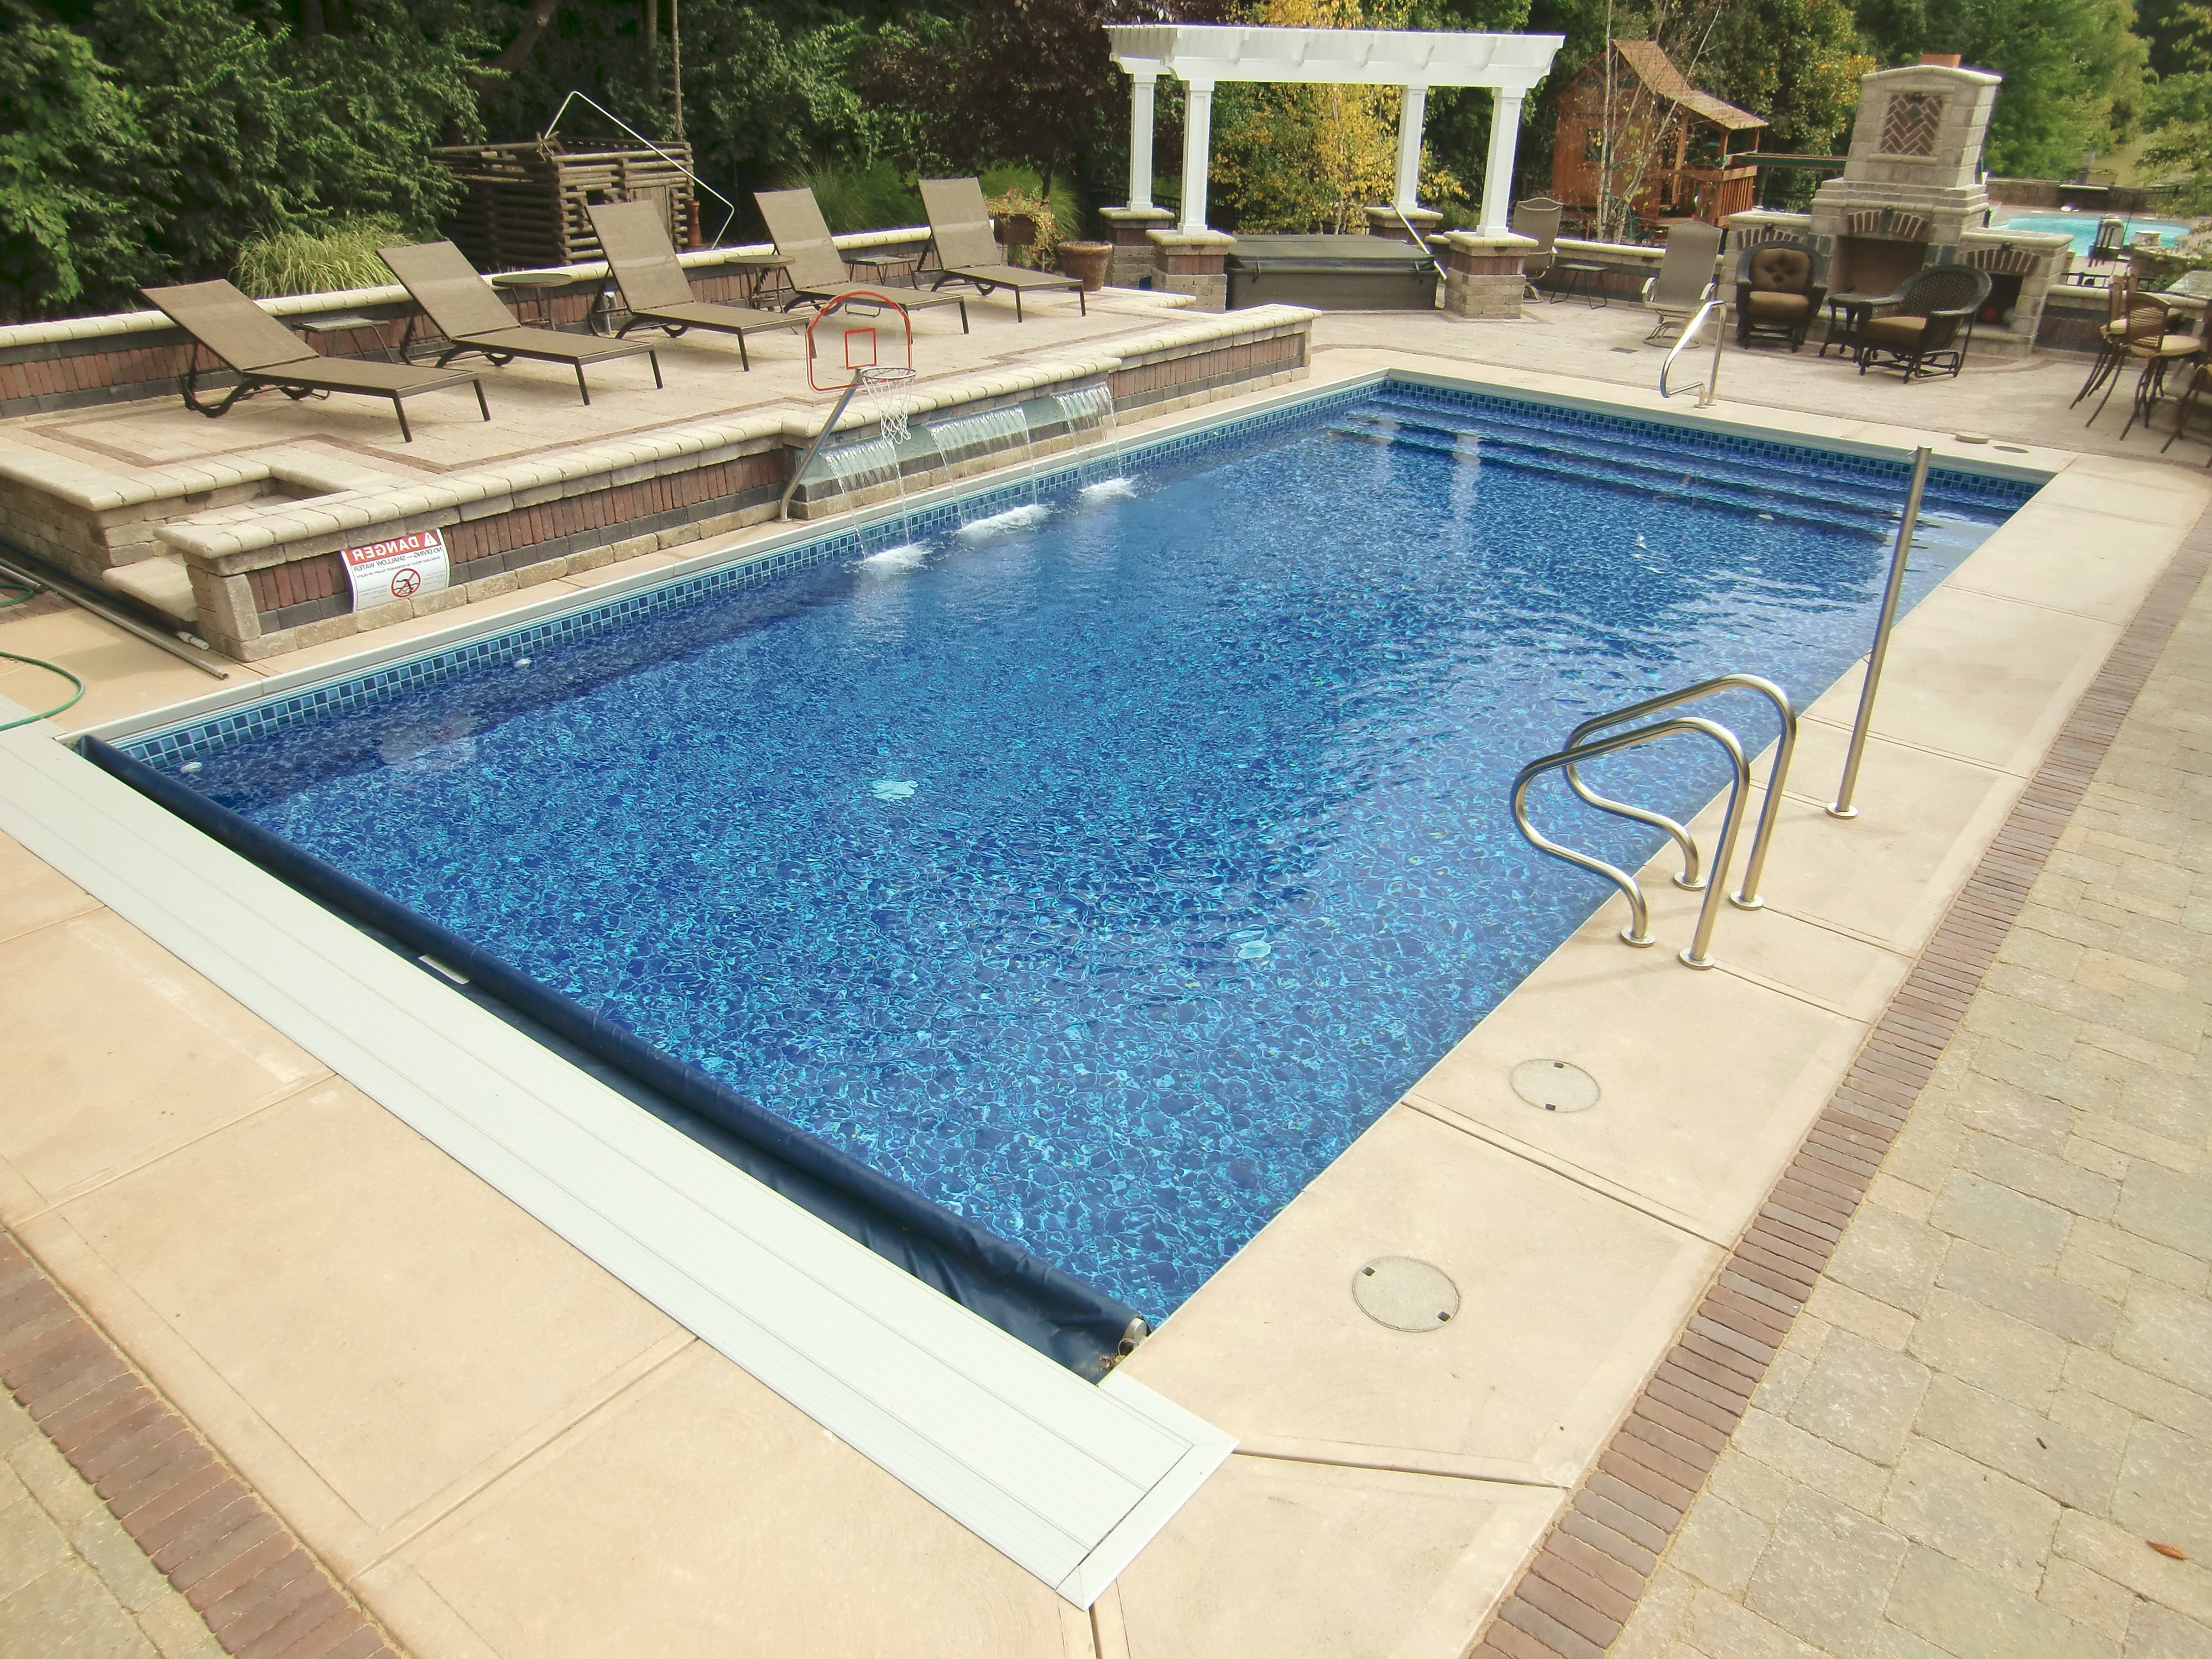 Vinyl liner pools in central indiana top 6 reasons to buy - Steps to build an inground swimming pool ...